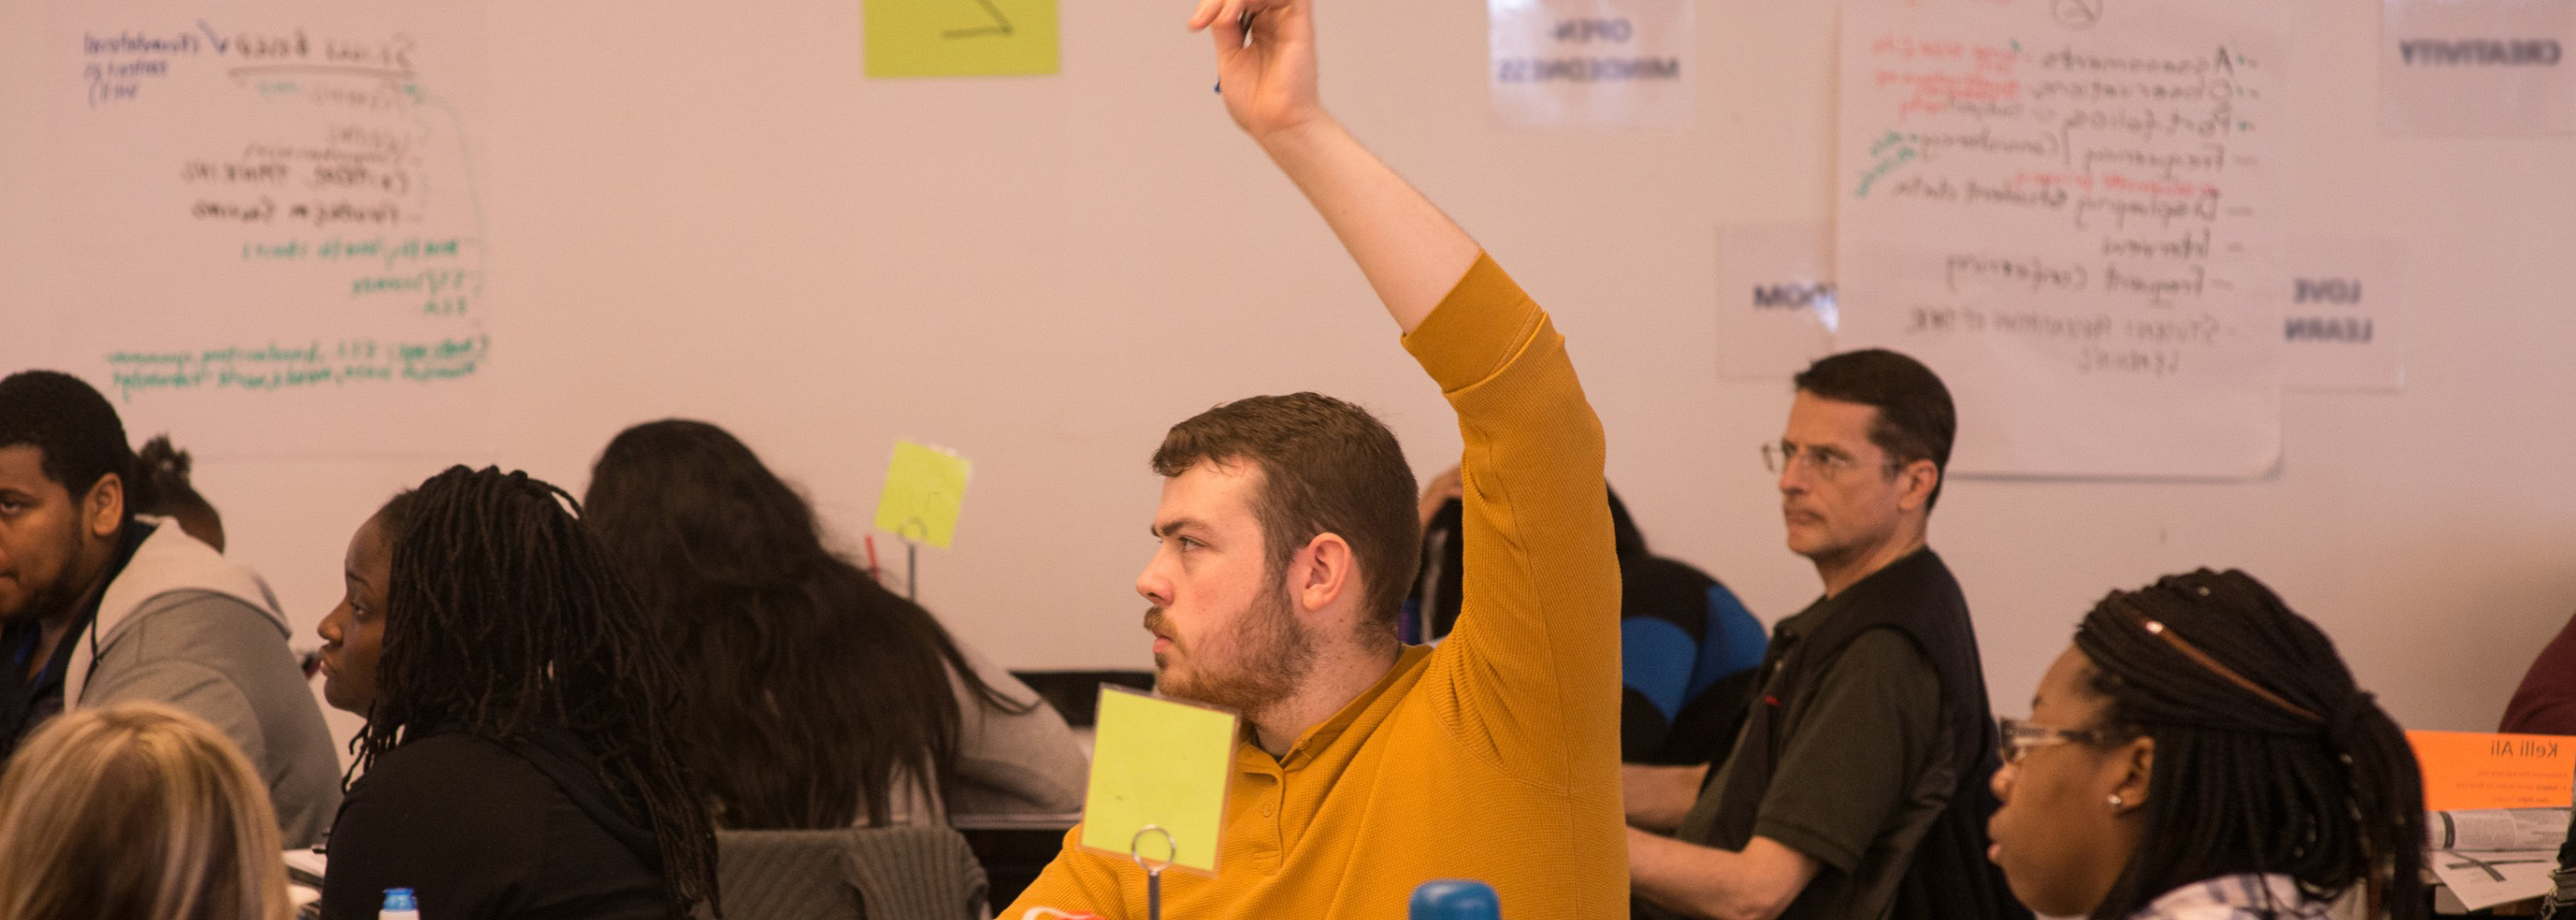 A Relay graduate student raises his hand during a special education class.